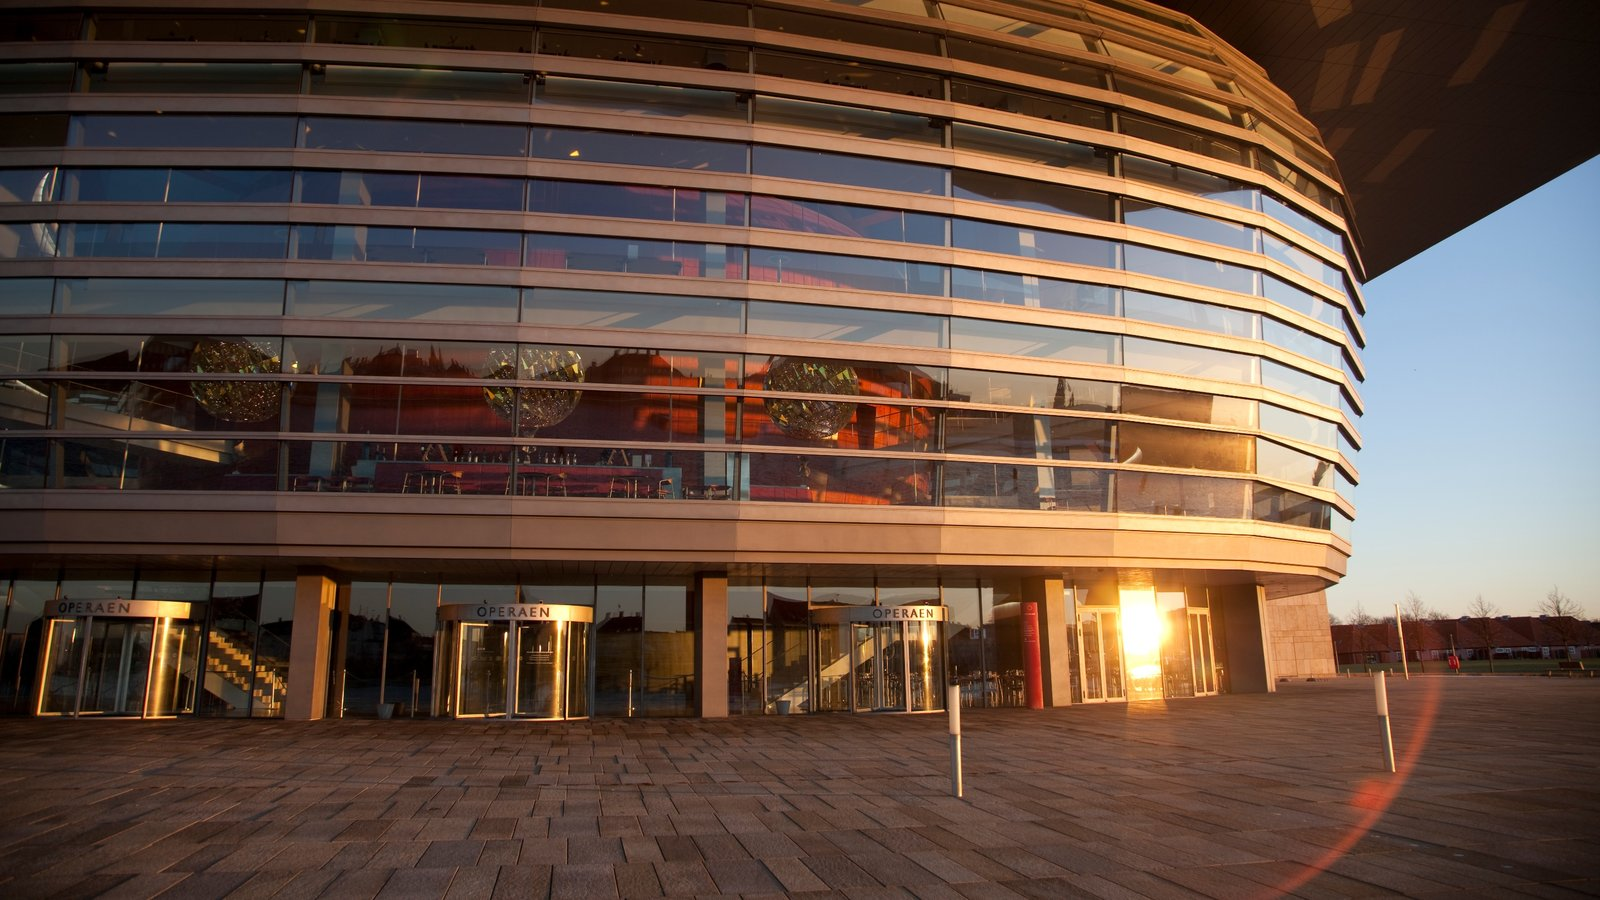 Copenhagen Opera House featuring theater scenes, modern architecture and a city